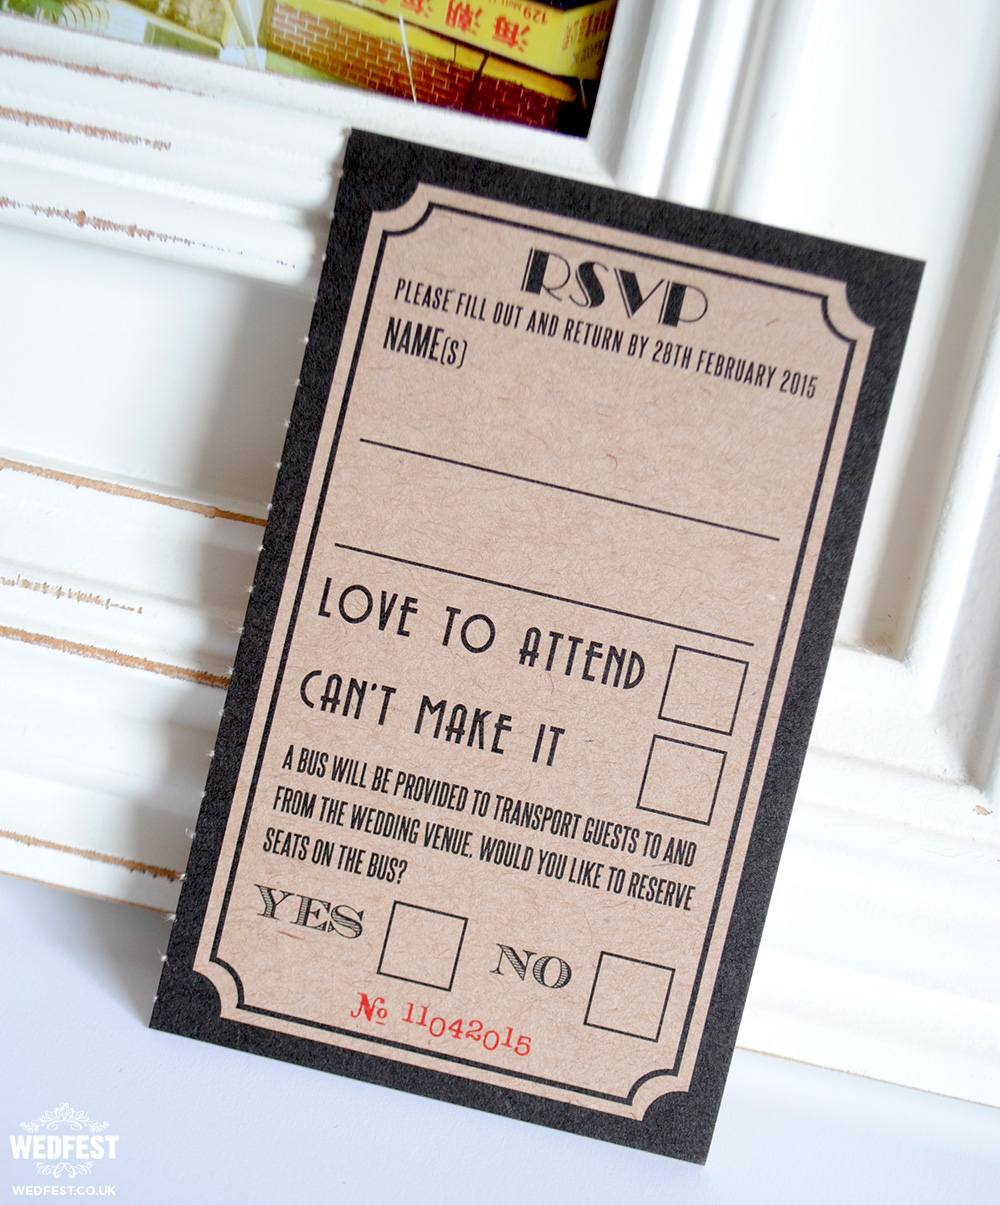 movie ticket stub wedding rsvp card